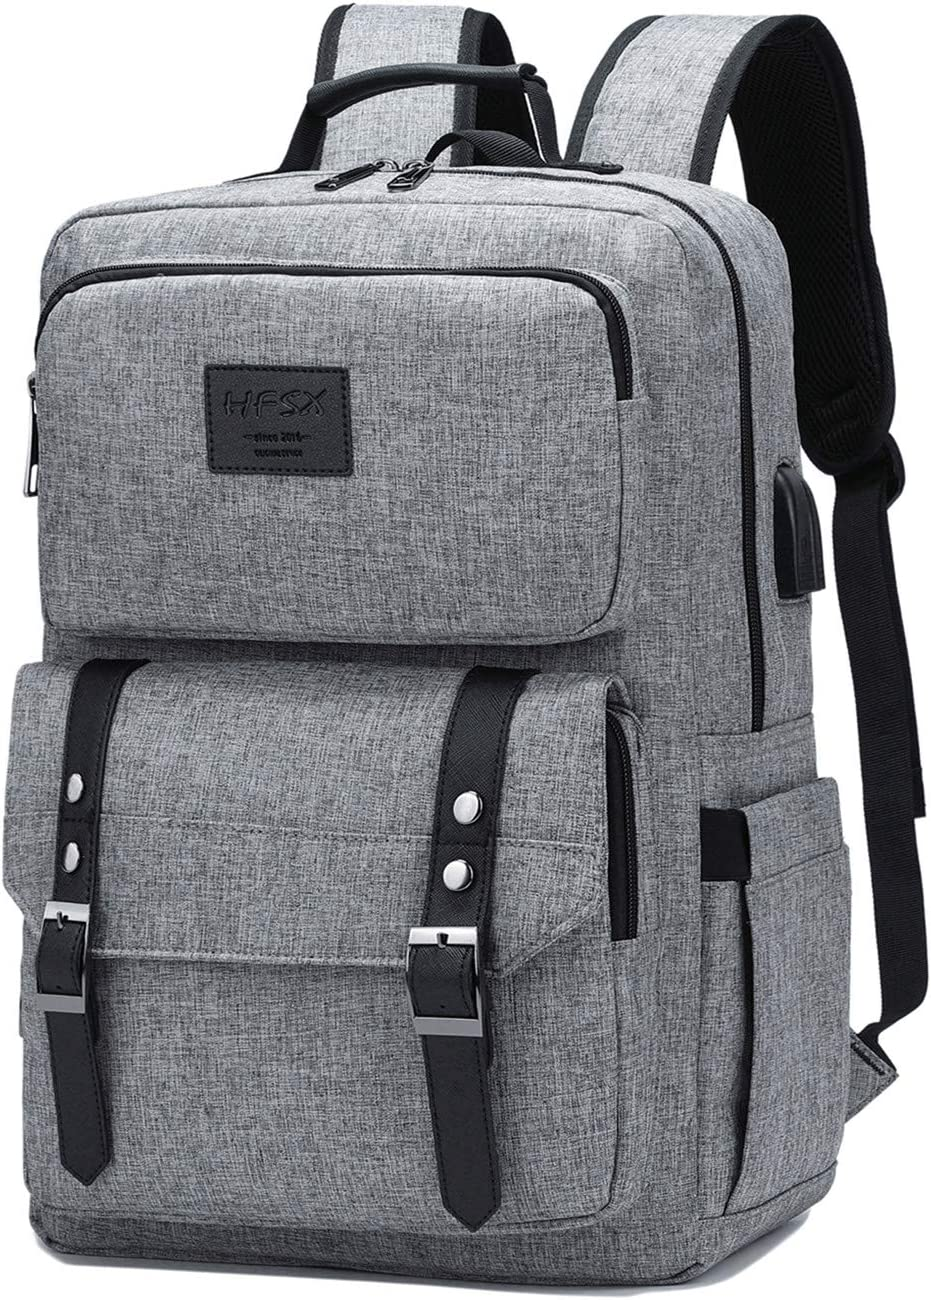 Laptop Backpack Women Men College Backpacks Bookbag Vintage Backpack Book Bag Fashion Back Pack Anti Theft Travel Backpacks with Charging Port fit 15.6 Inch Laptop Grey